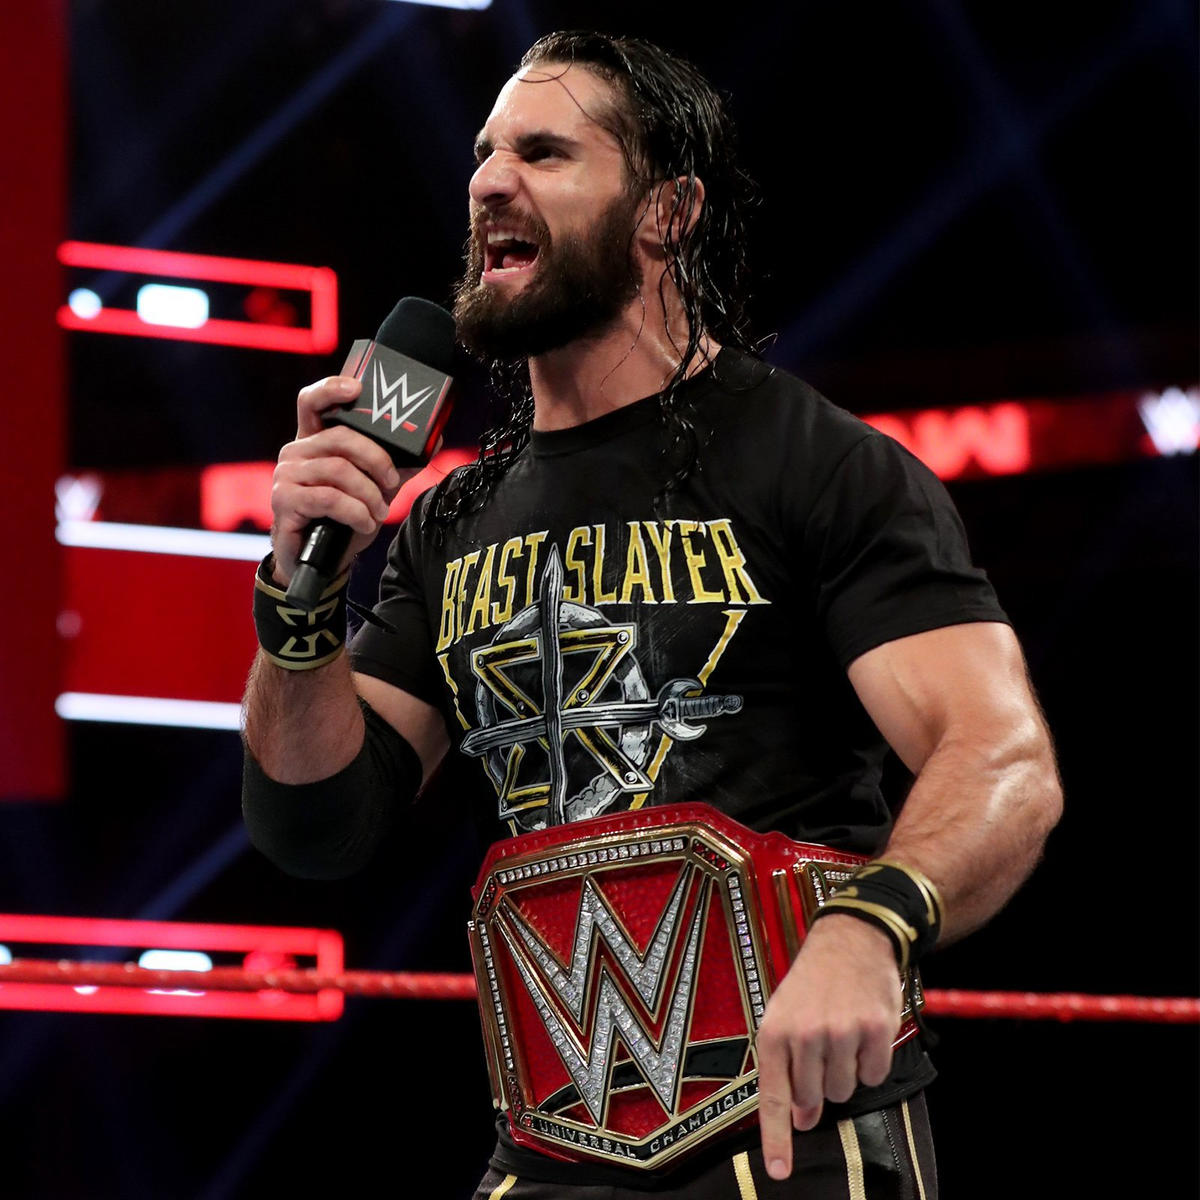 Universal Champion Seth Rollins knew everyone would be gunning for him when he won the title.